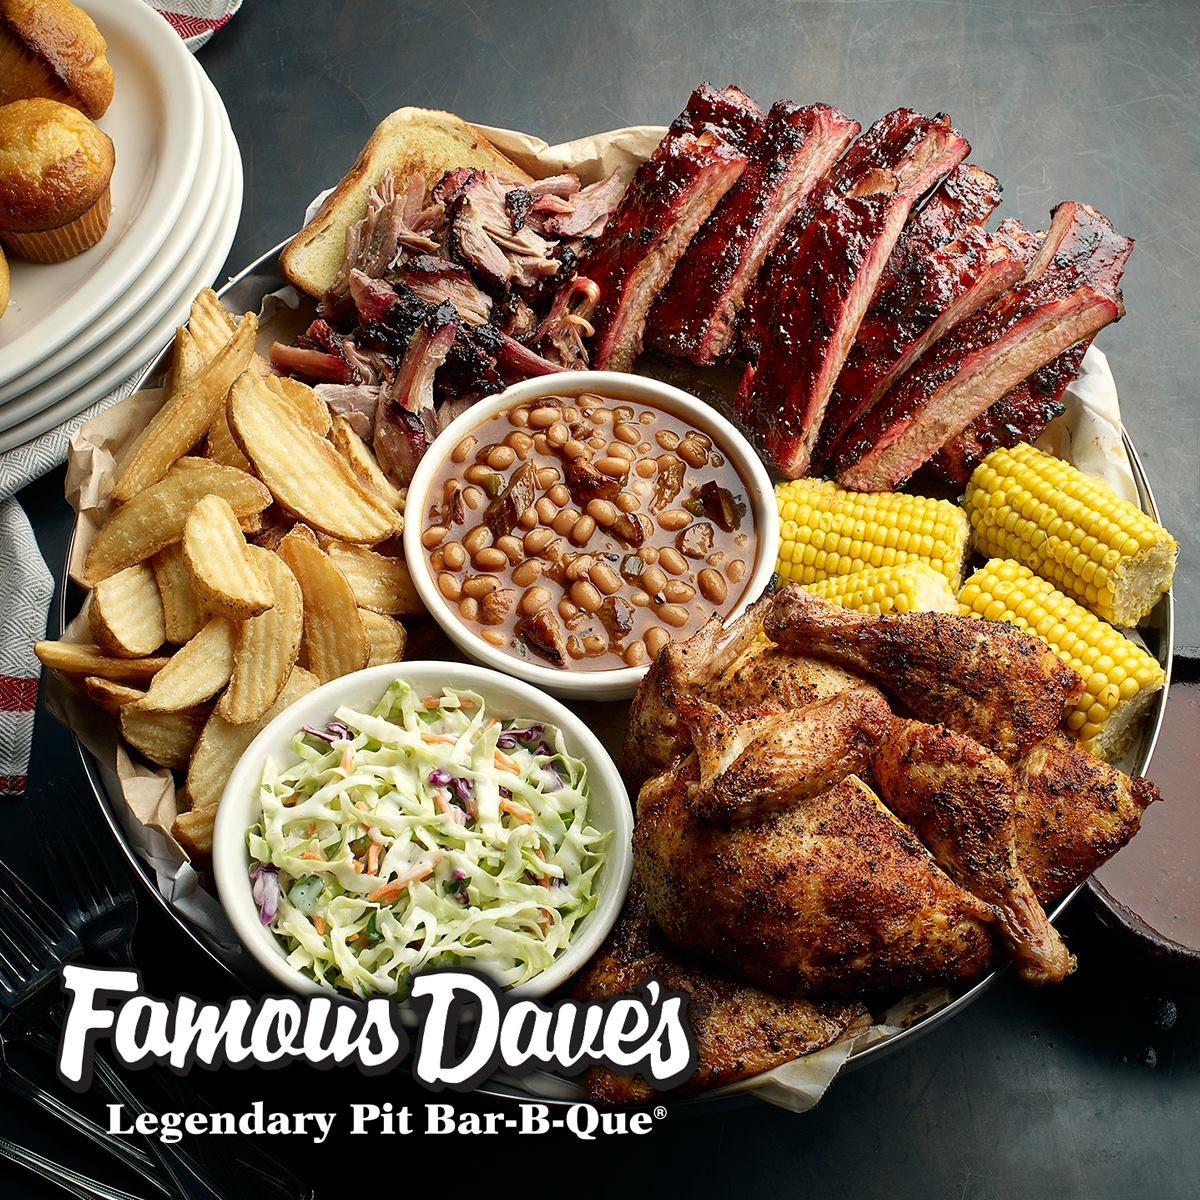 how to place an order with famous dave's caterers - famous dave's